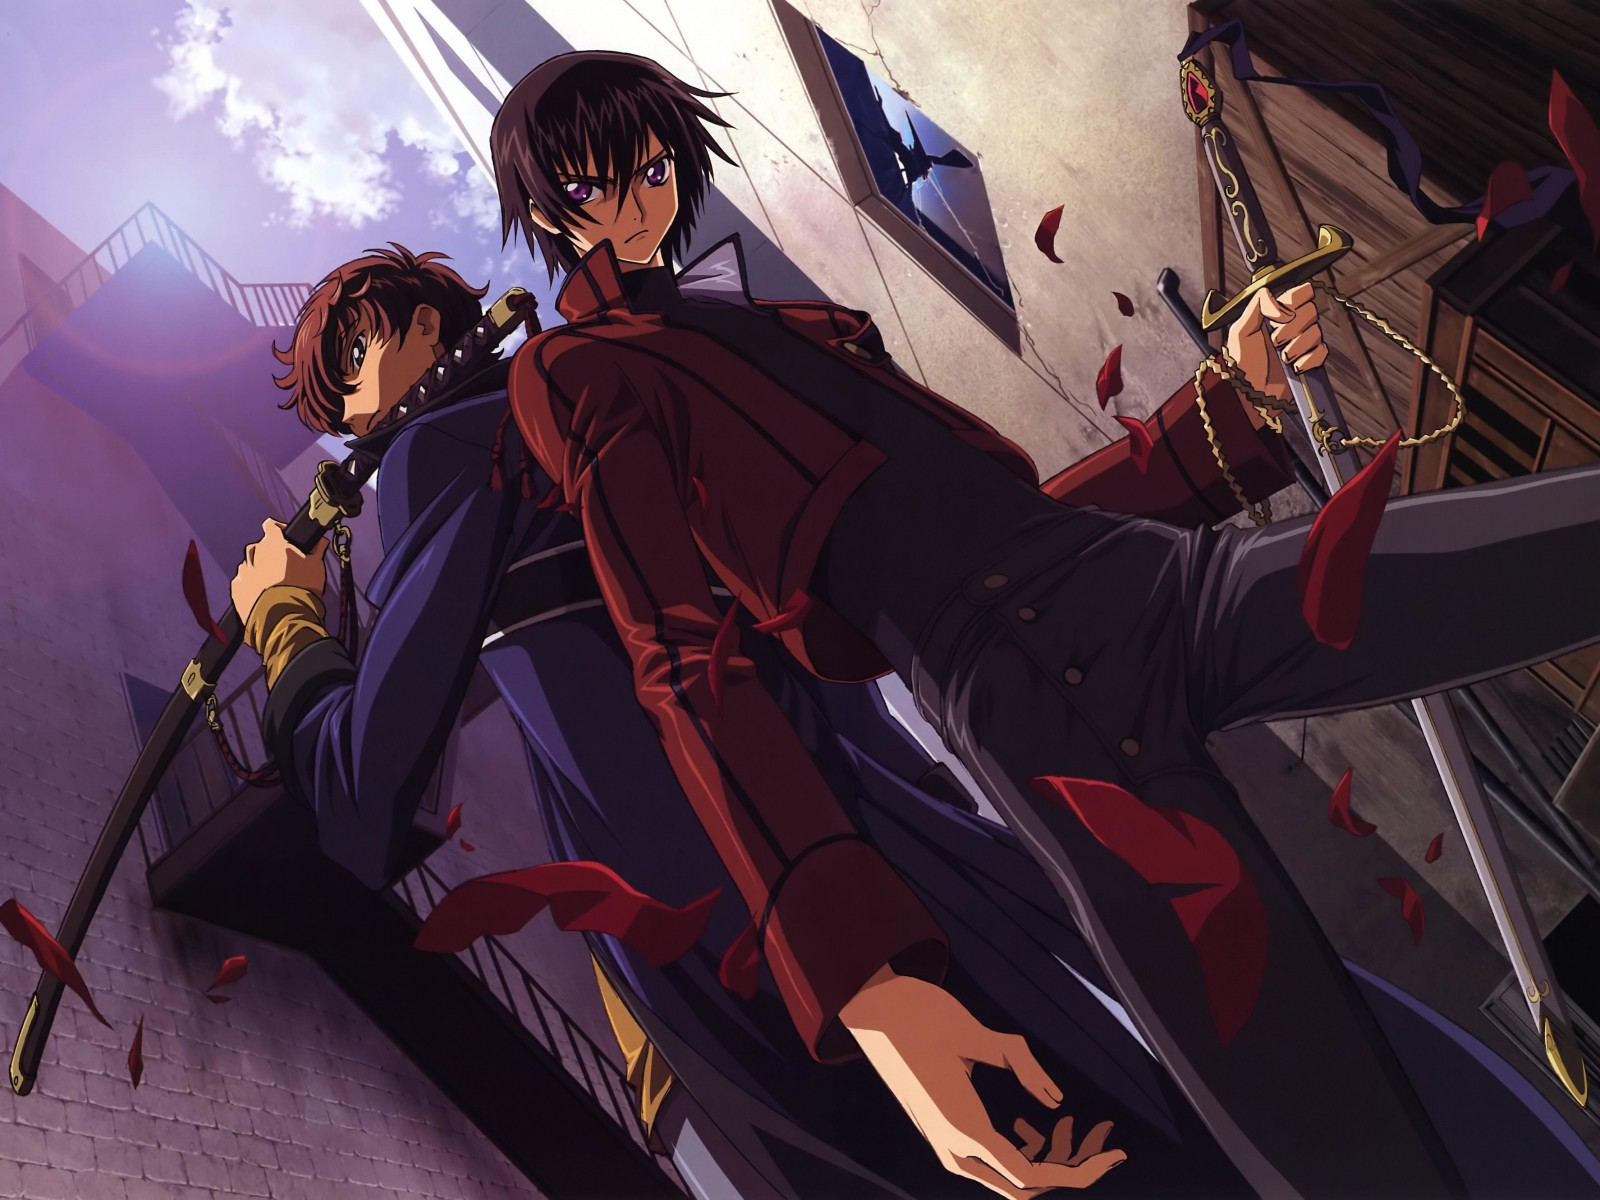 Code Geass Wallpaper for Desktop 1600x1200